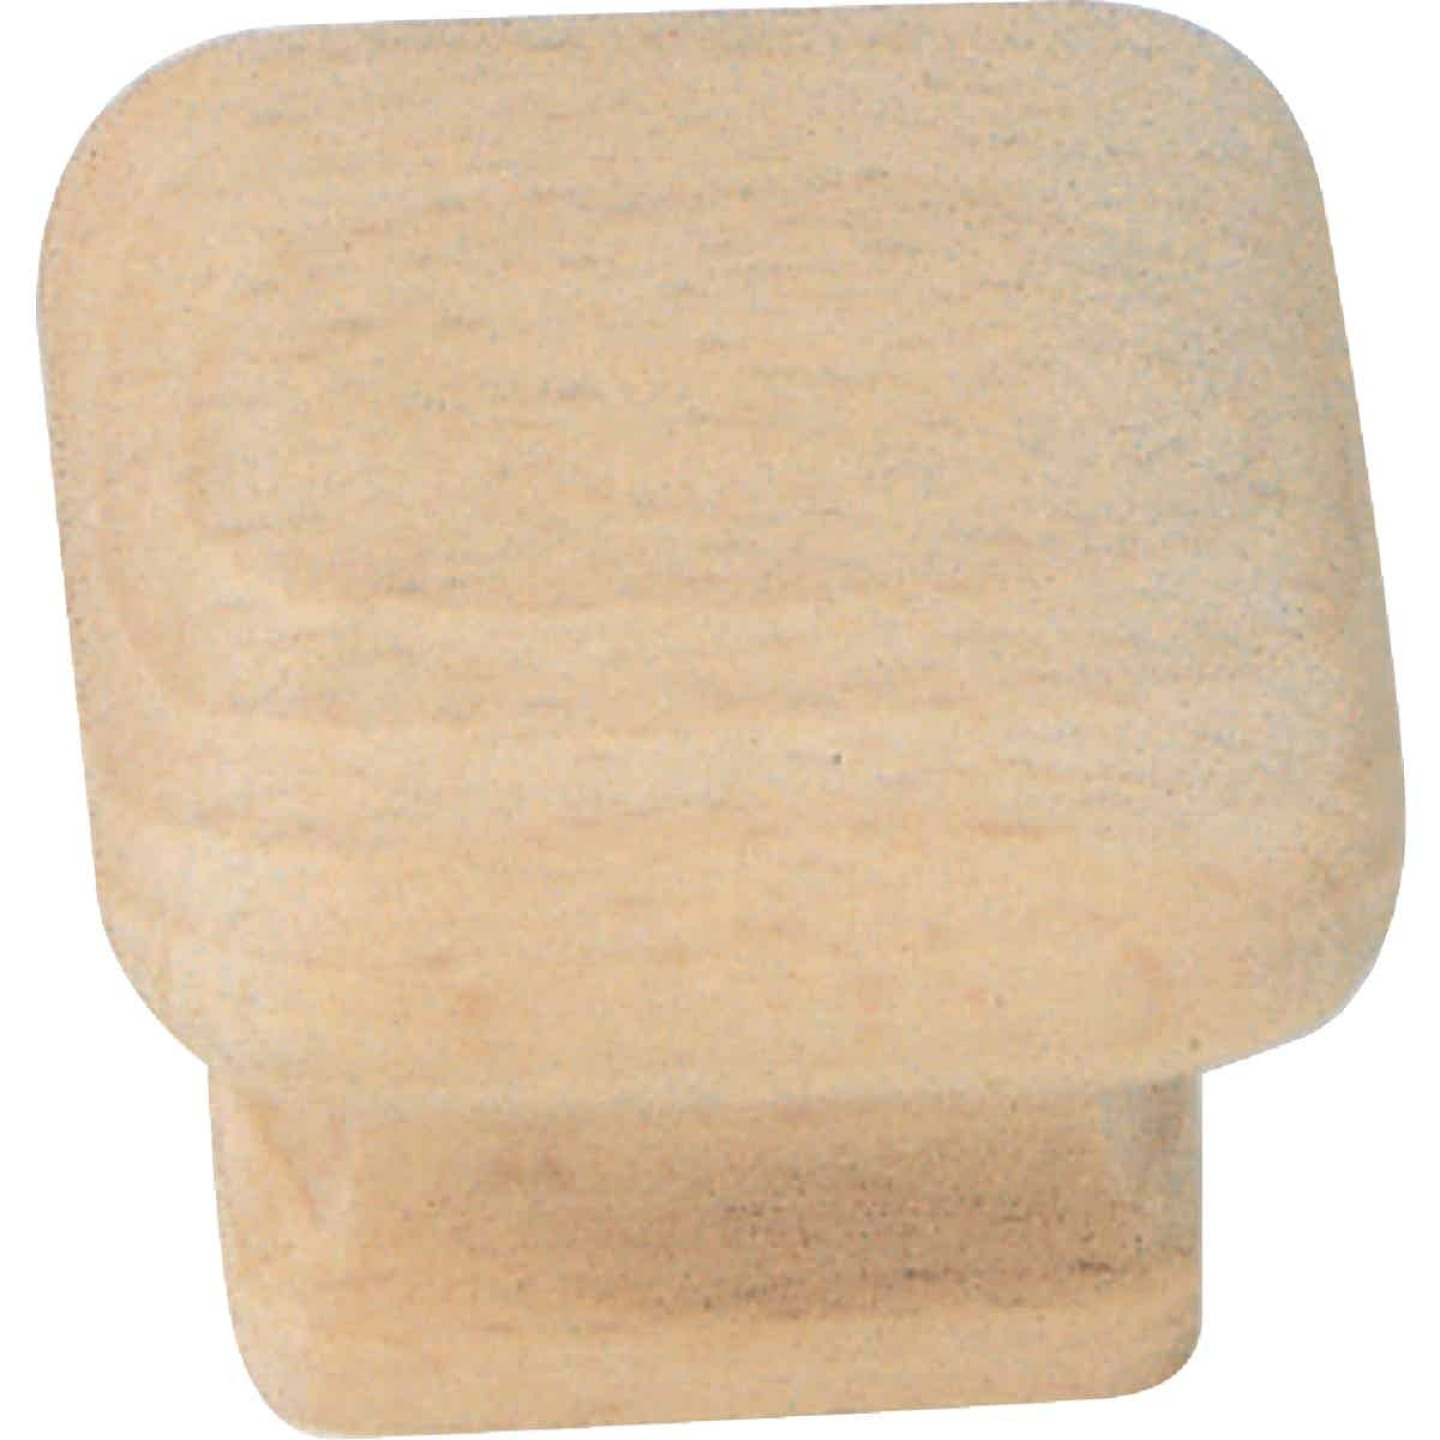 Laurey Natural Wood 1-1/2 In. Cabinet Knob Image 1